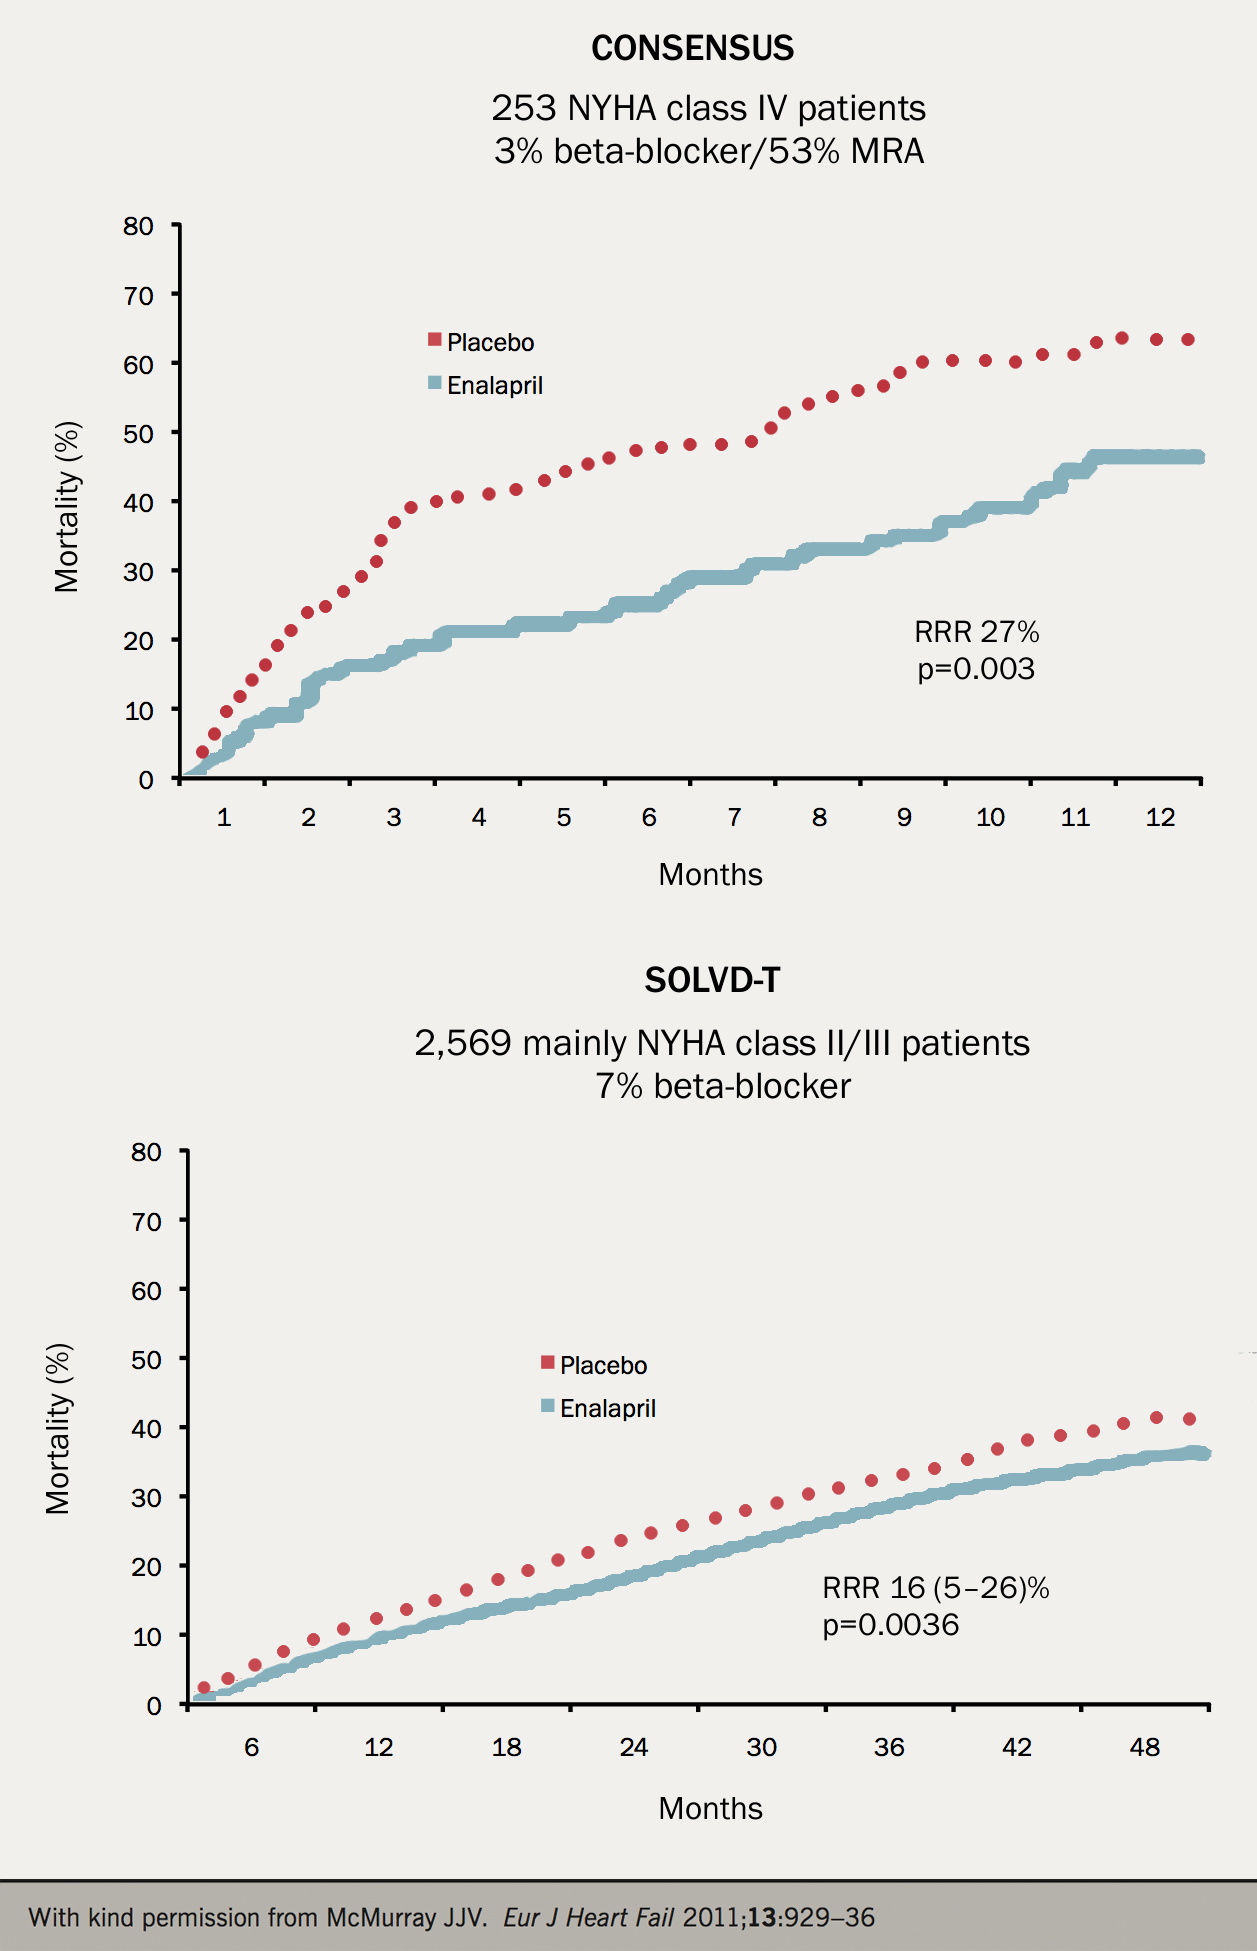 Figure 1. Trials comparing an angiotensin-converting enzyme (ACE) inhibitor to placebo in patients with systolic heart failure. Outcome is cumulative mortality. (click to enlarge)